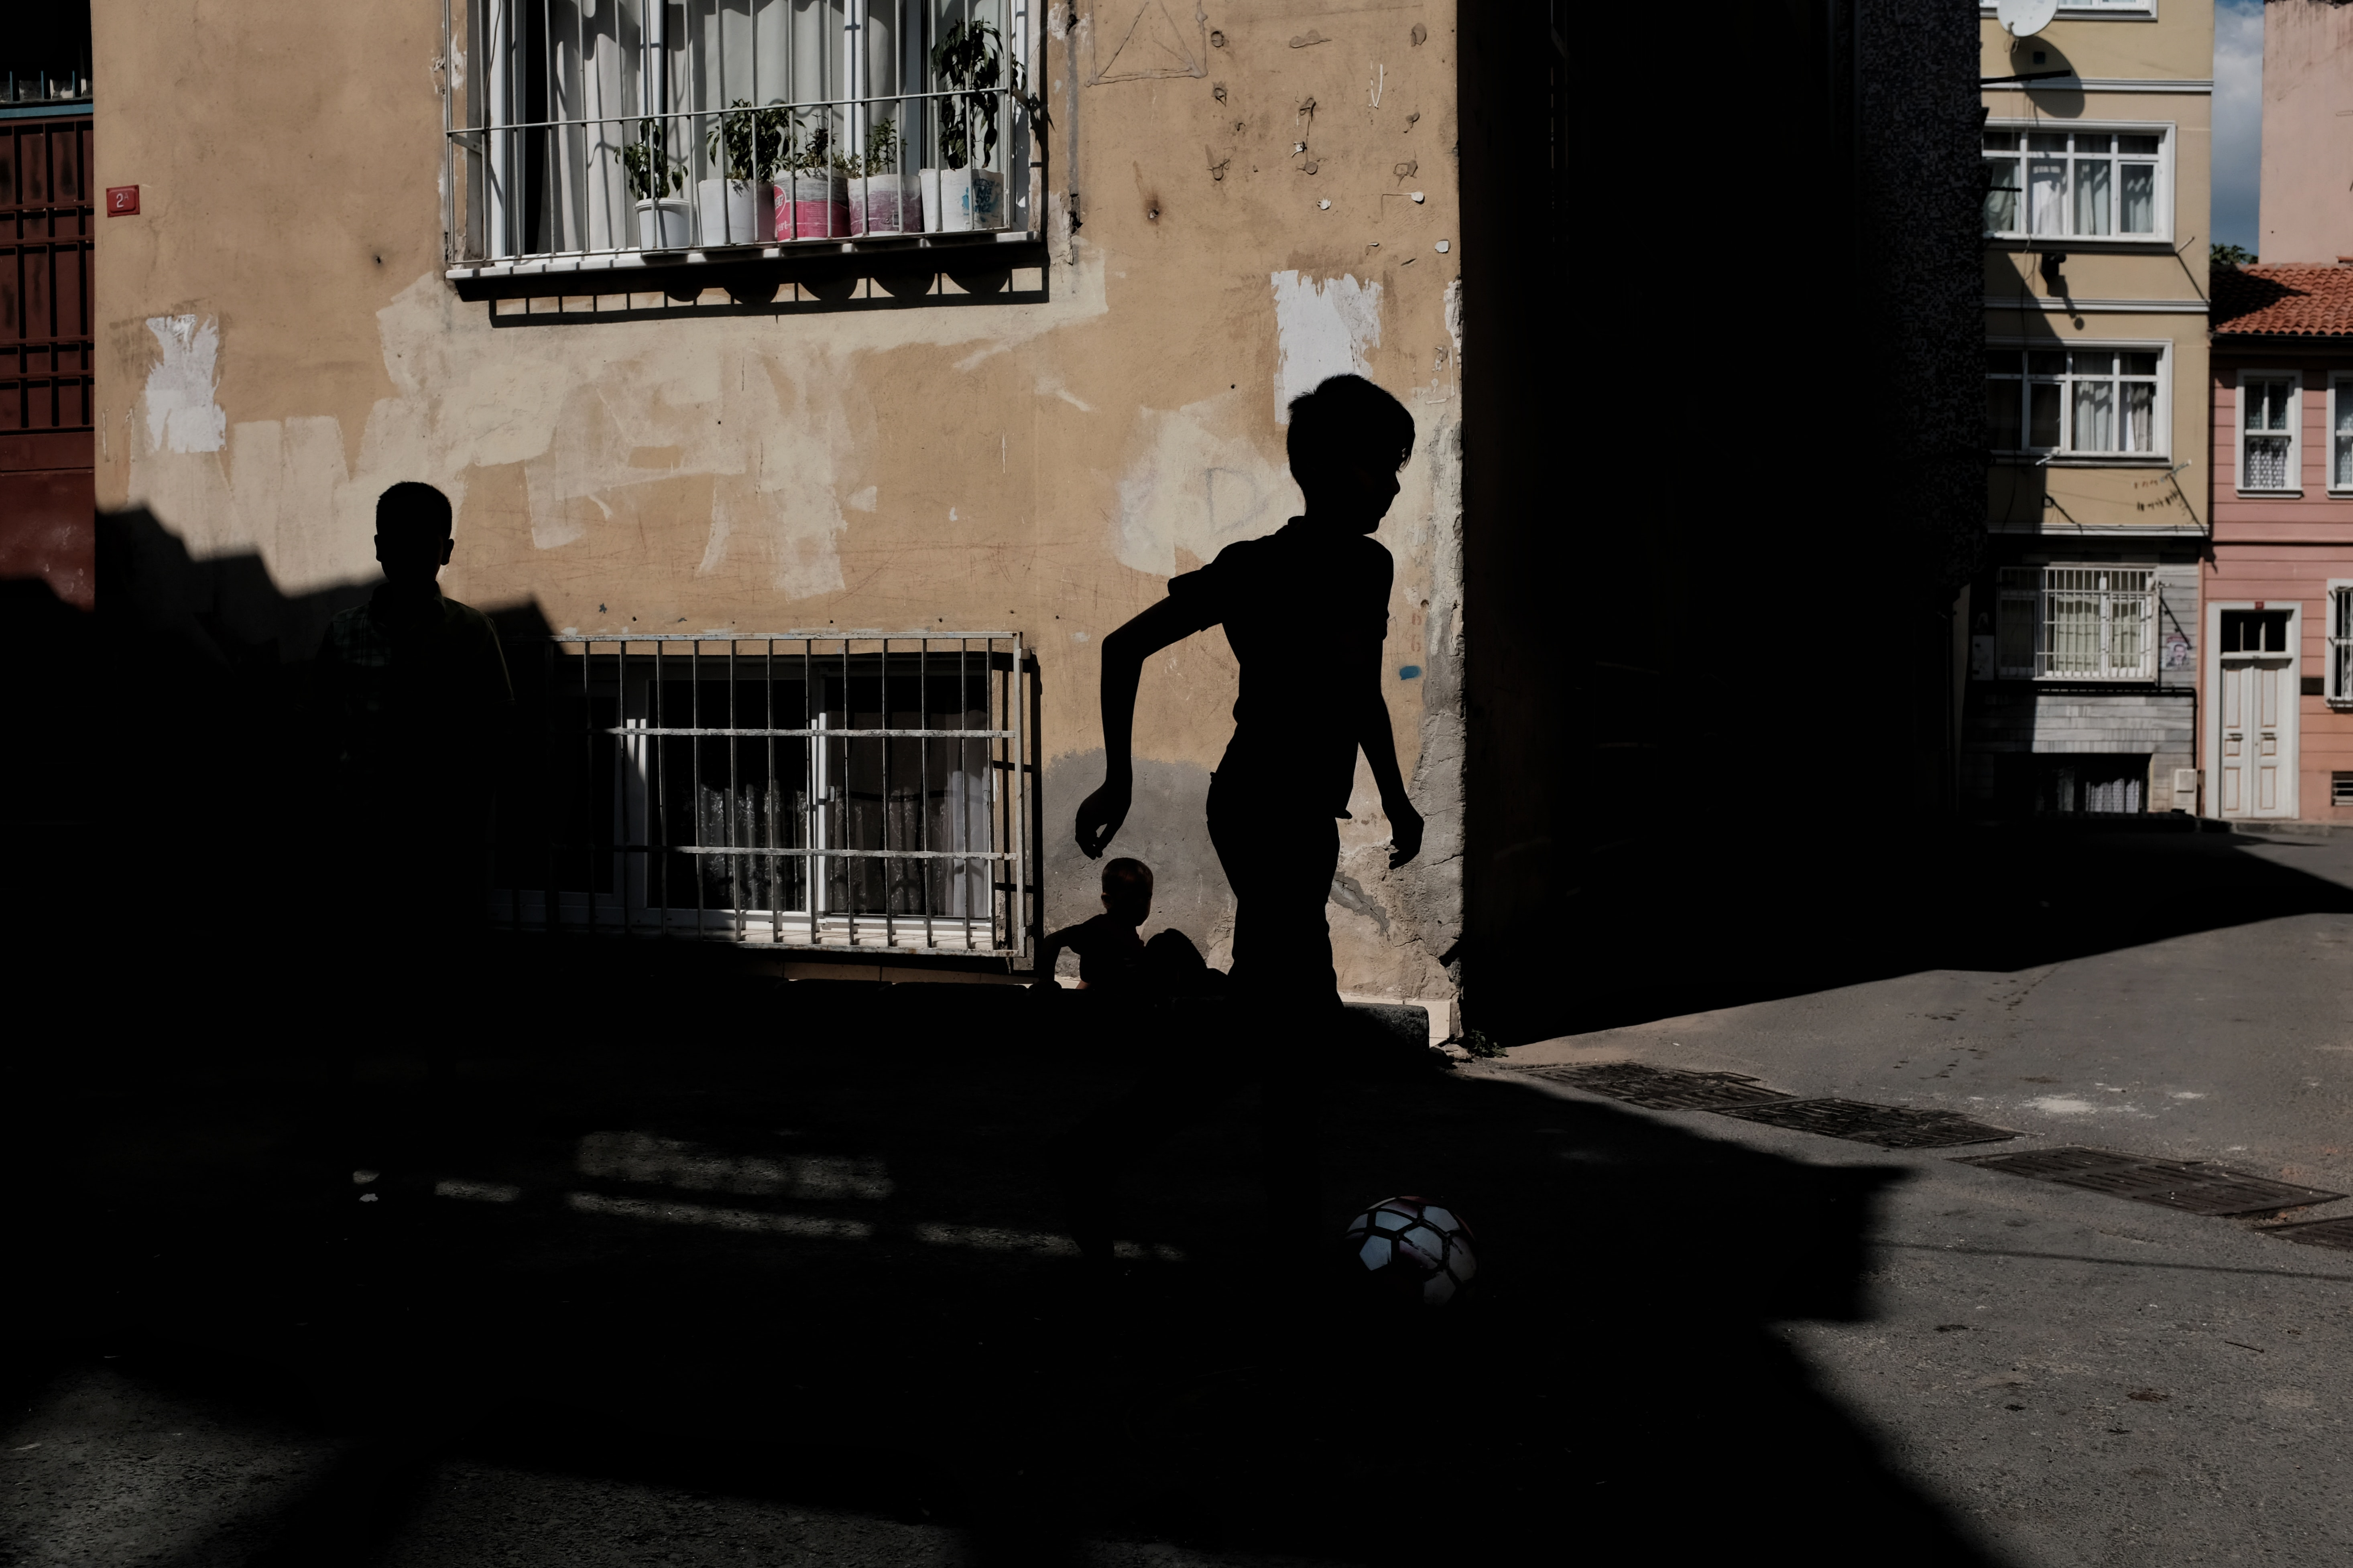 silhouette of boy running near brown concrete building during daytime